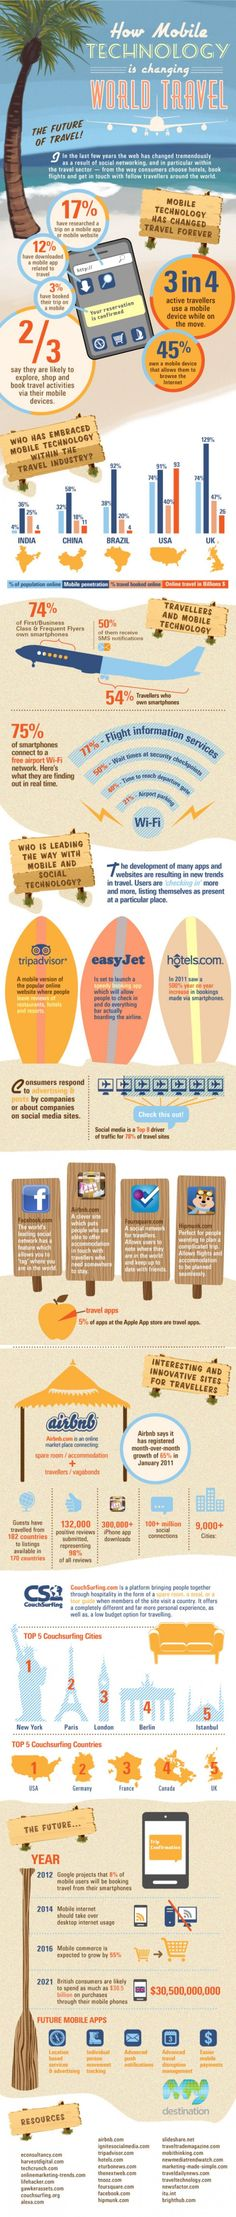 Mobile & Travel http://visual.ly/how-mobile-technology-changing-world-travel